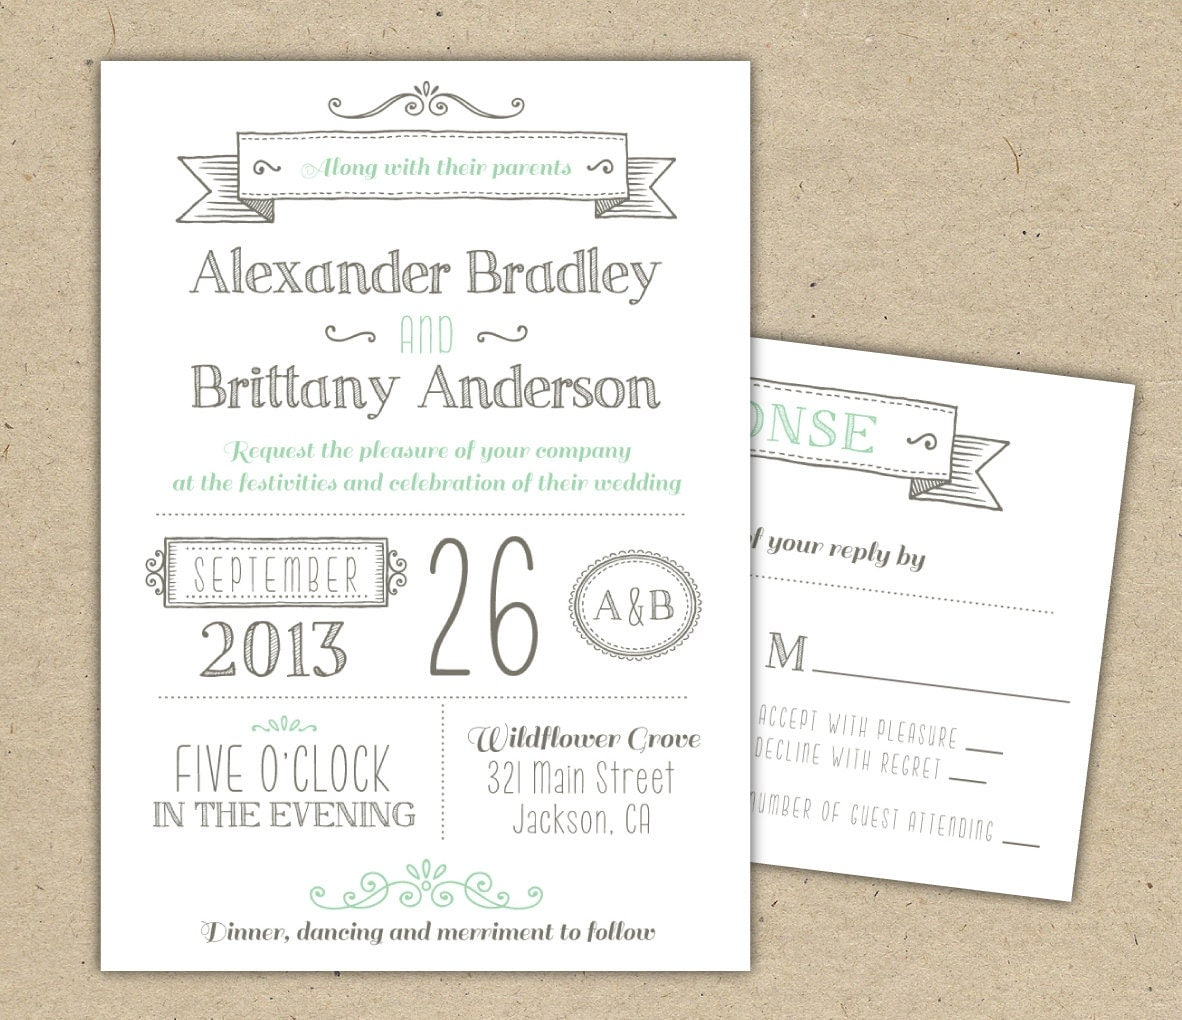 Samples Of Wedding Invites: Wedding Invitation 1041 SAMPLE. Modern Invitation Template